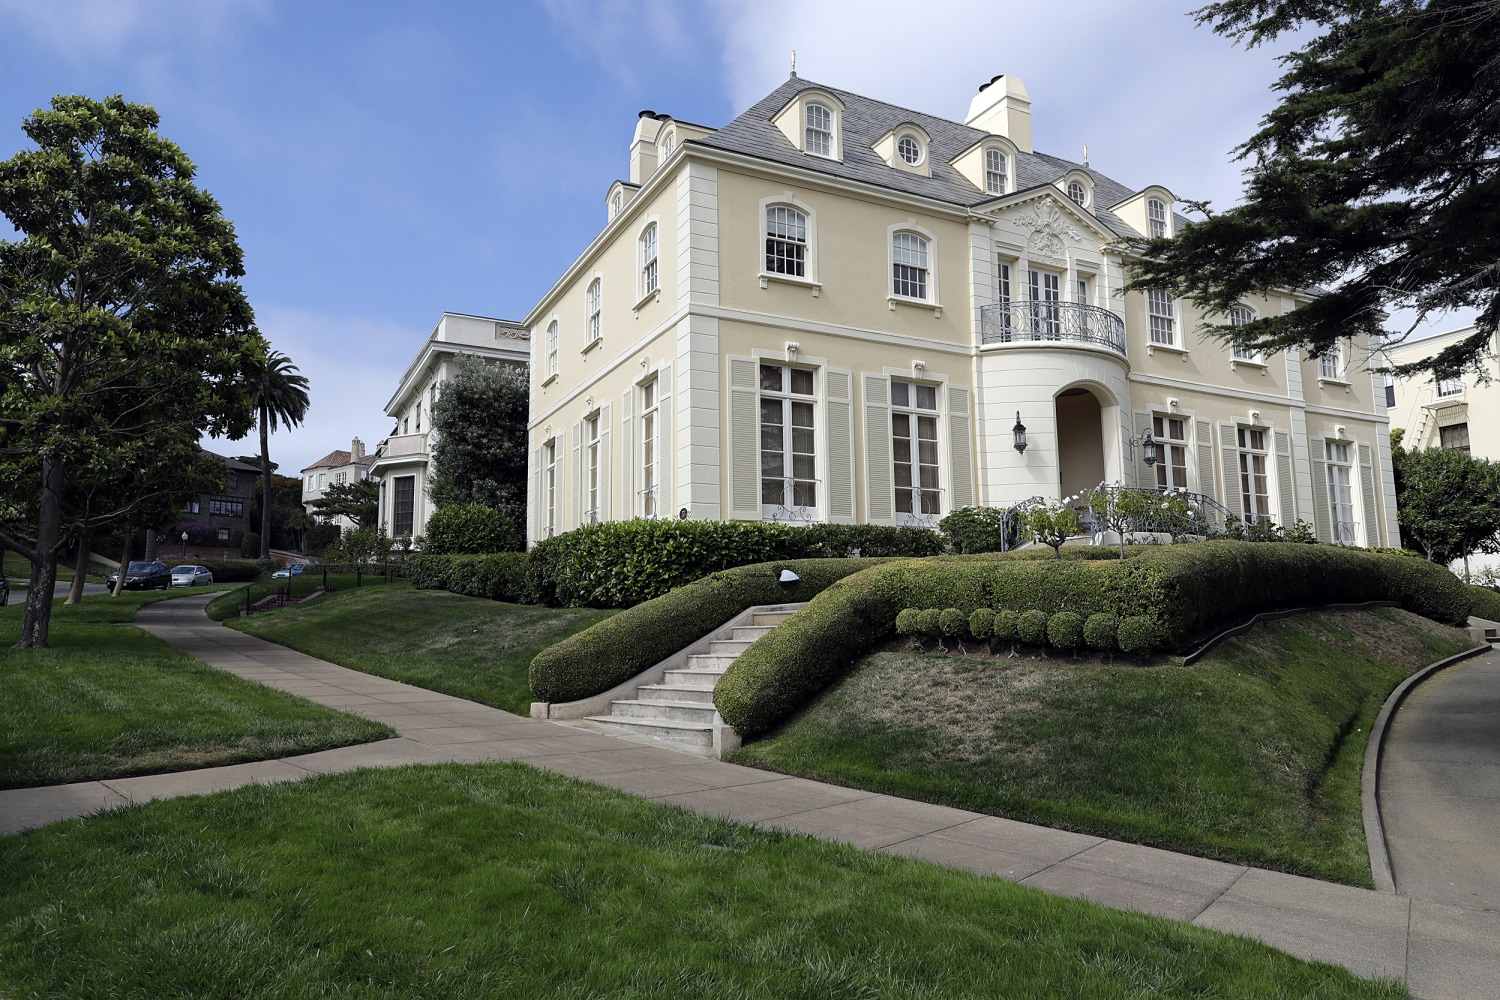 San francisco couple buys swanky presidio terrace for for Where is terrace